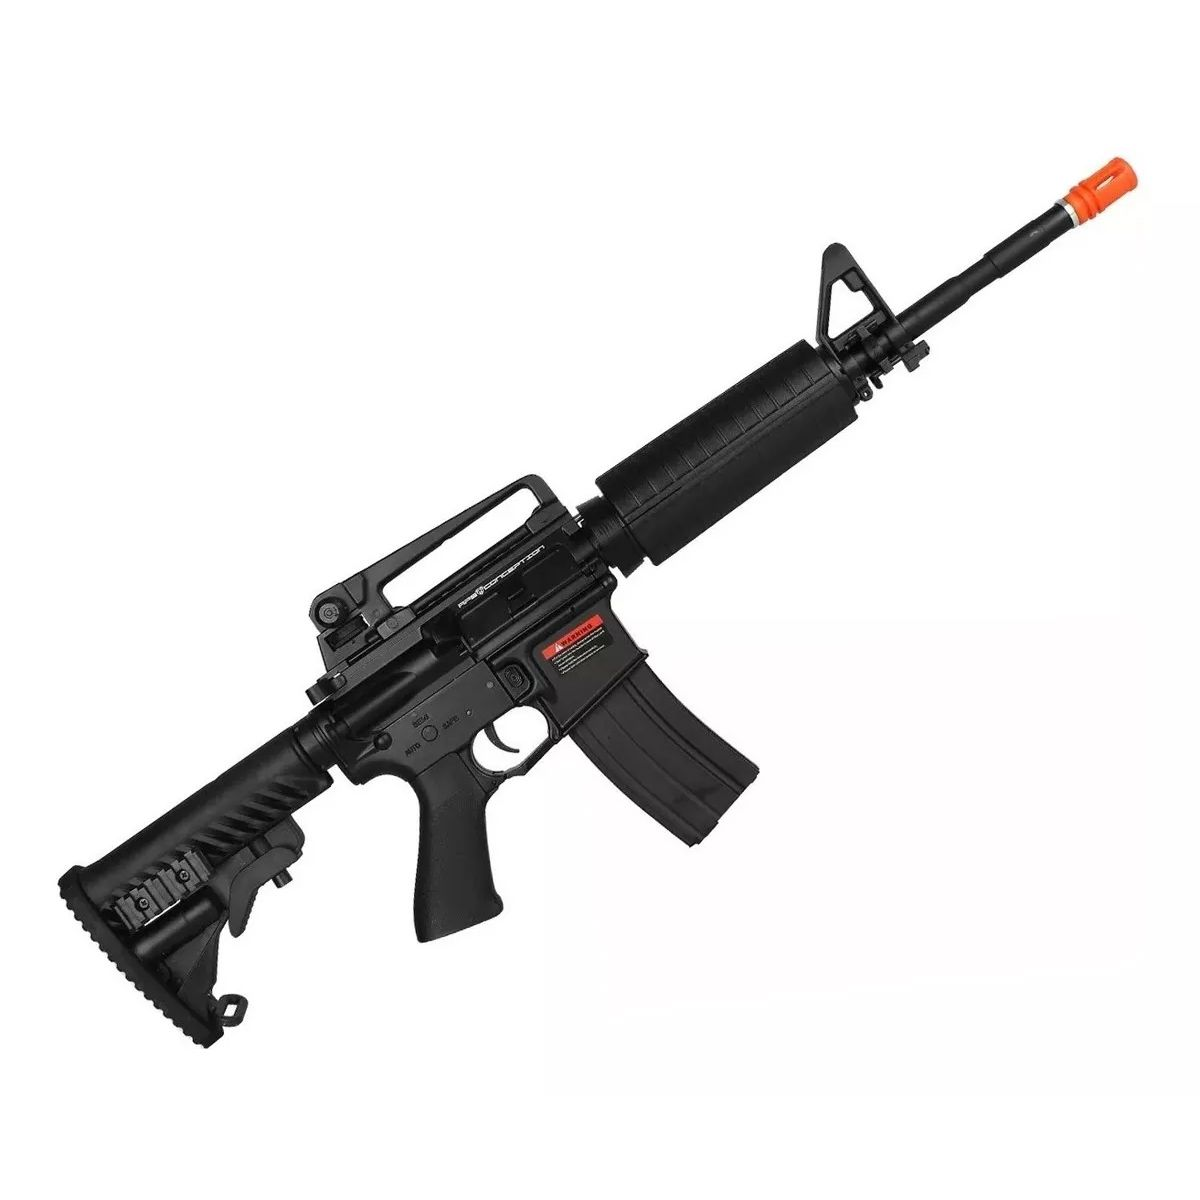 Rifle Airsoft Elétrico Aeg M4a1 Blow Black Full Metal Asr101